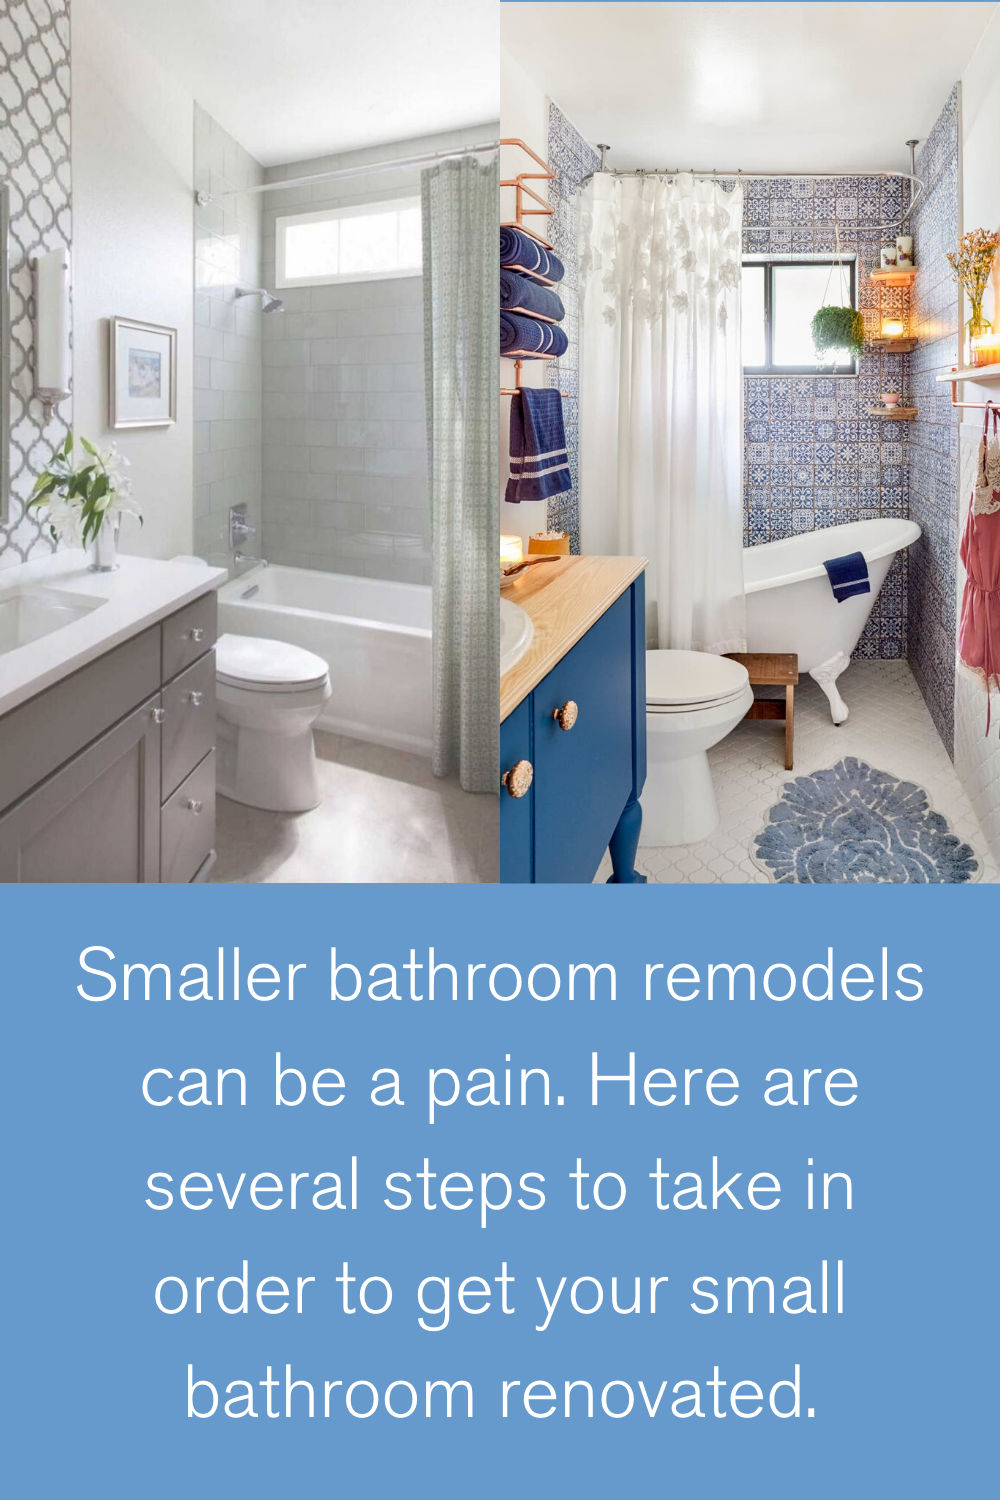 Small Bathroom Remodeling Ideas In 2020 Small Bathroom Remodel Bathrooms Remodel Small Bathroom